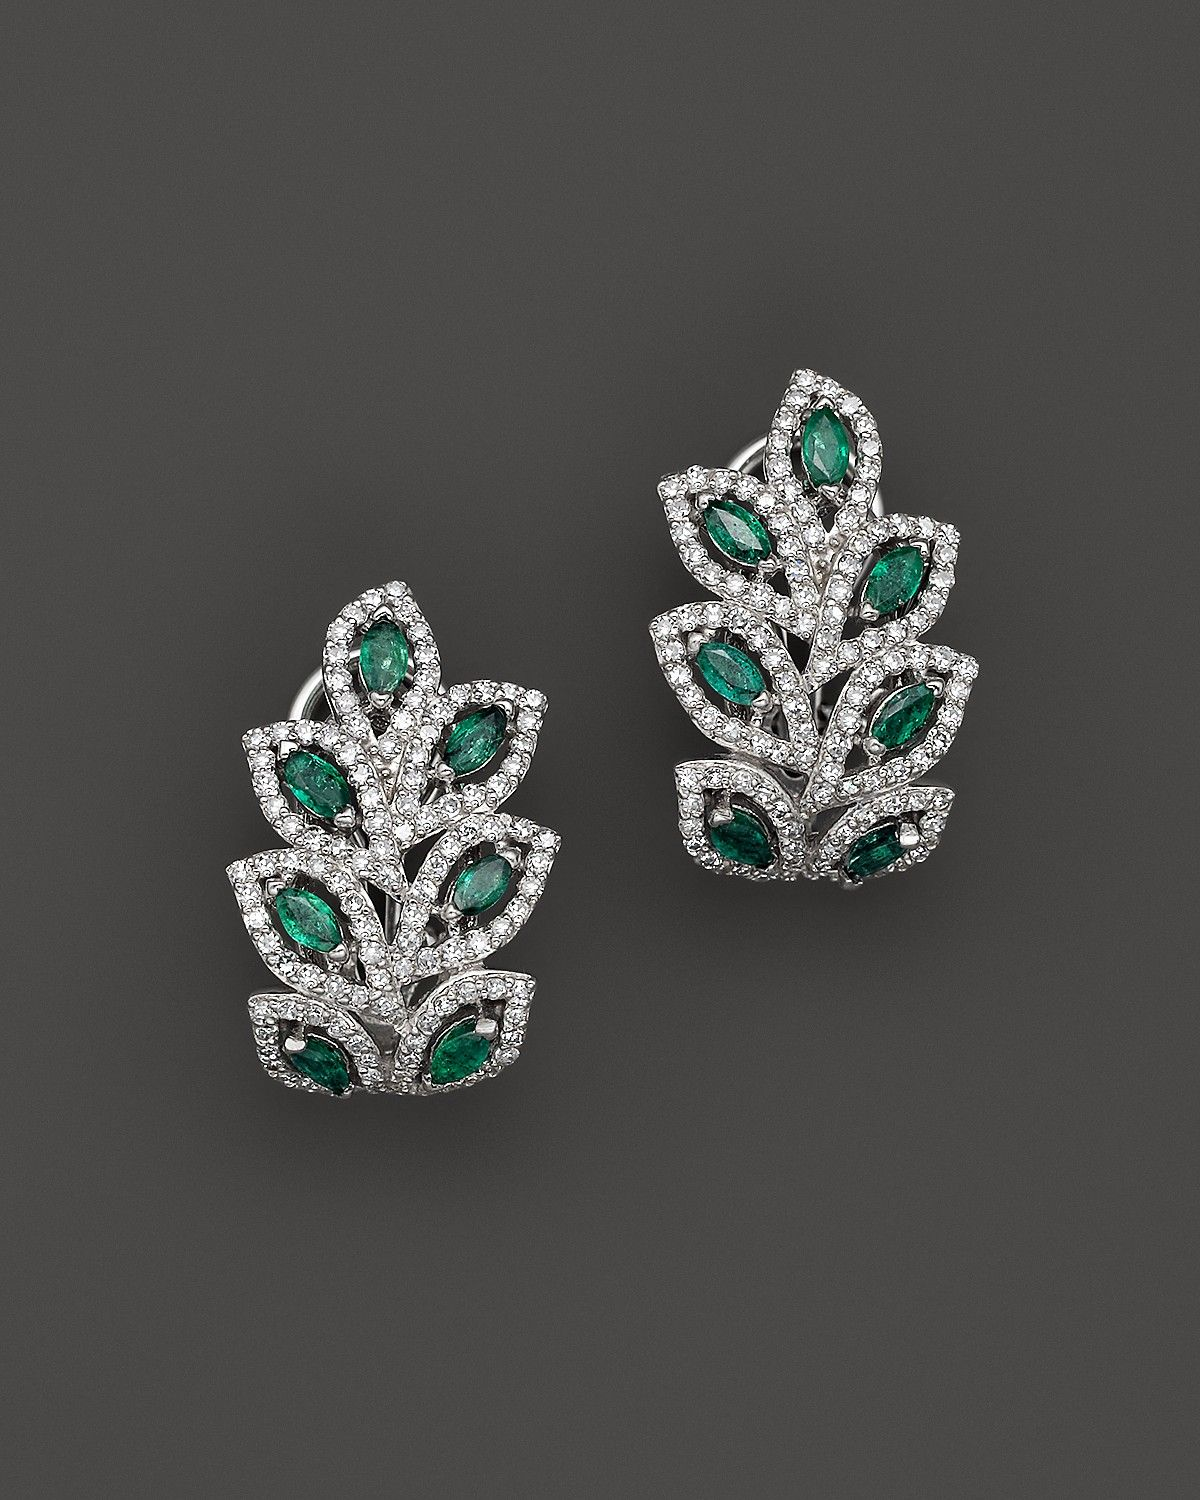 Emerald and diamond leaf post earrings in k white gold